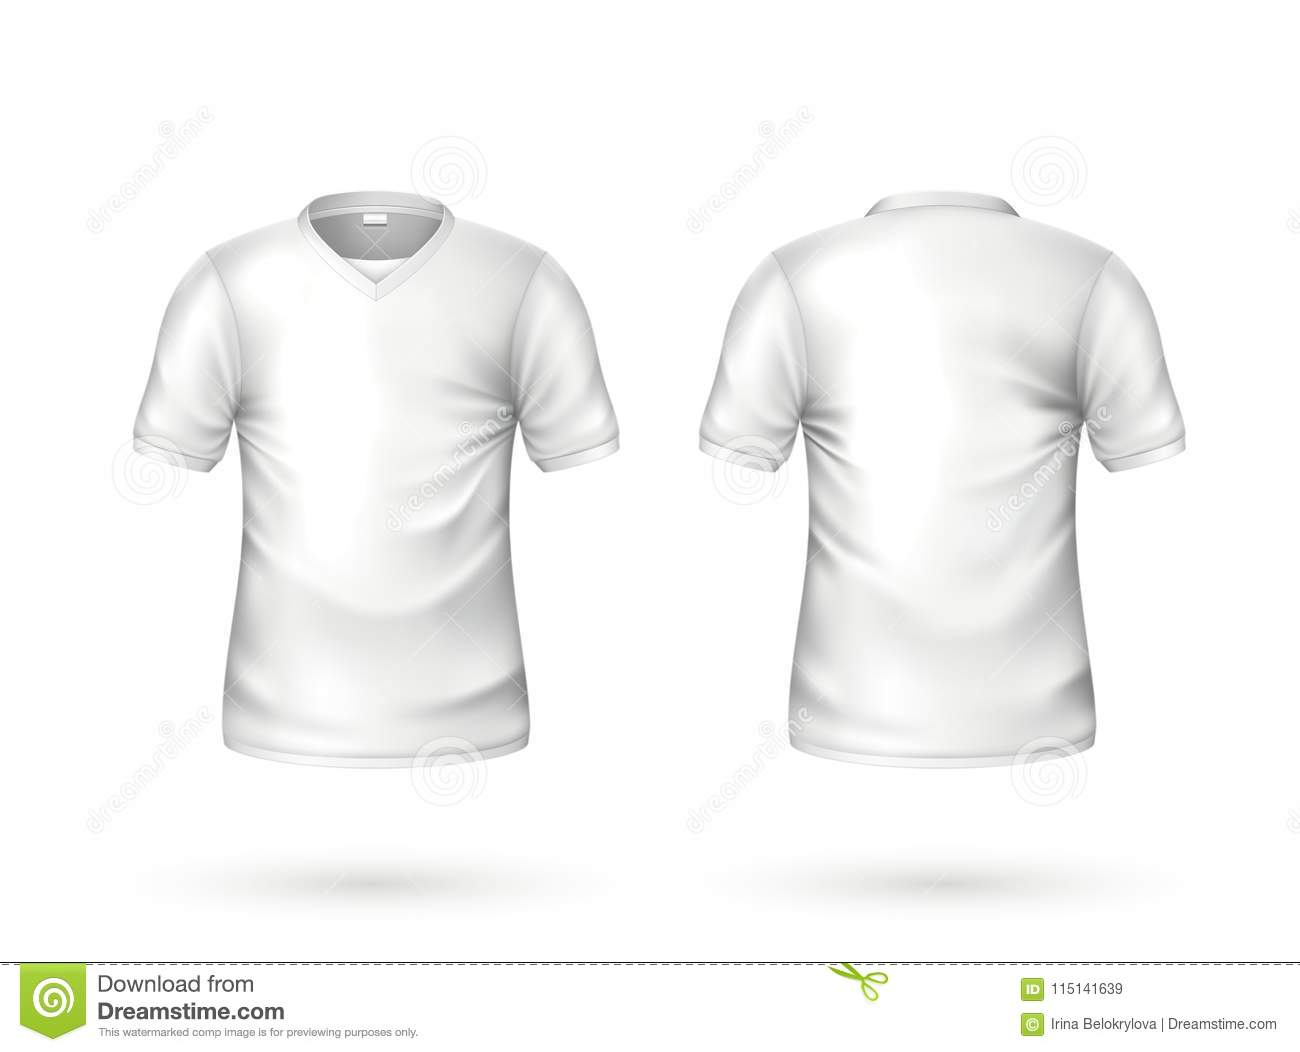 cb98db29 T-shirt white mockup. Realistic unisex male female blank clothing template.  Men, women cotton apparel front, back view. Casual wear, ready for your  design.